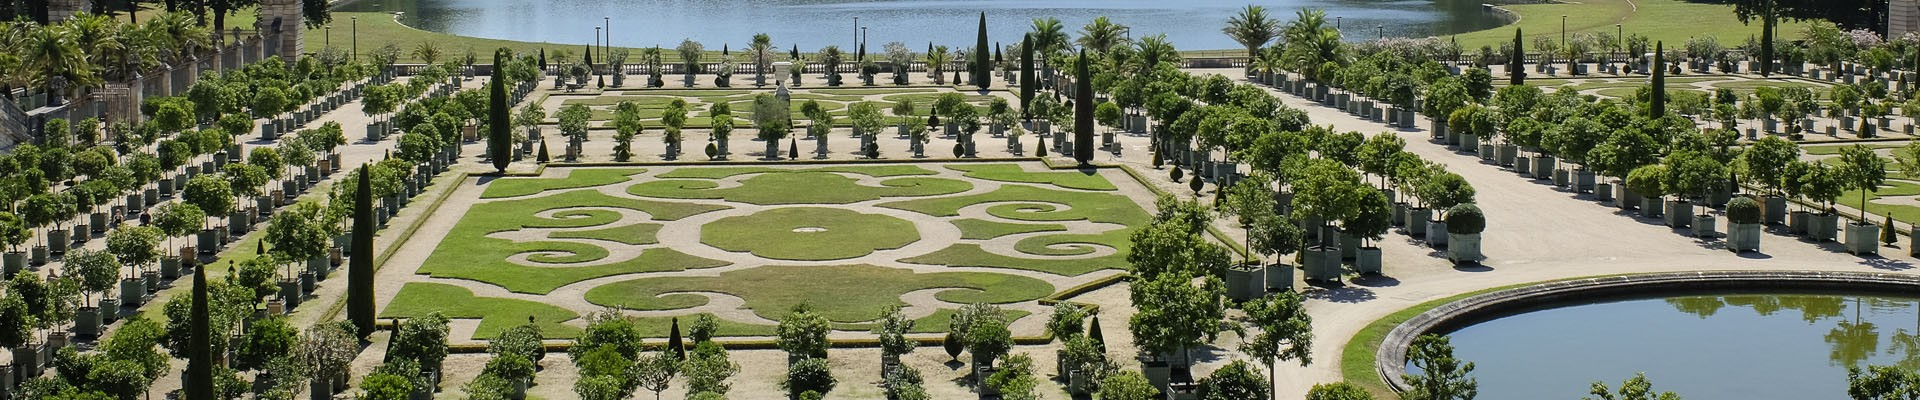 parks-and-gardens-131